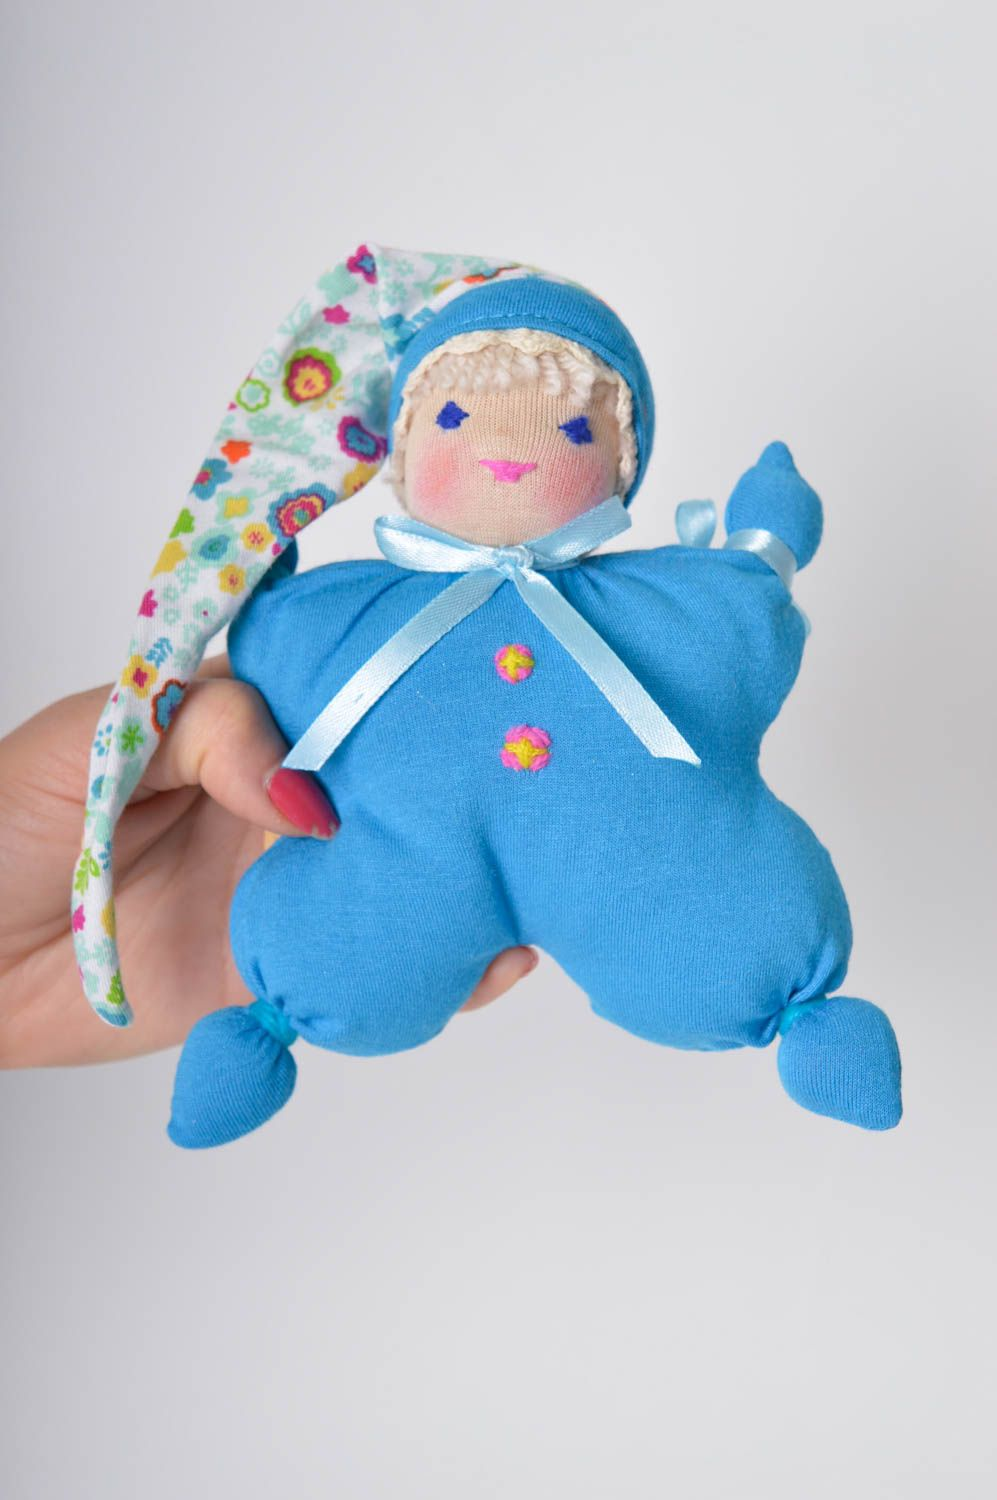 Toy for kids handmade soft toy soft doll nursery decor for decorative use only photo 4